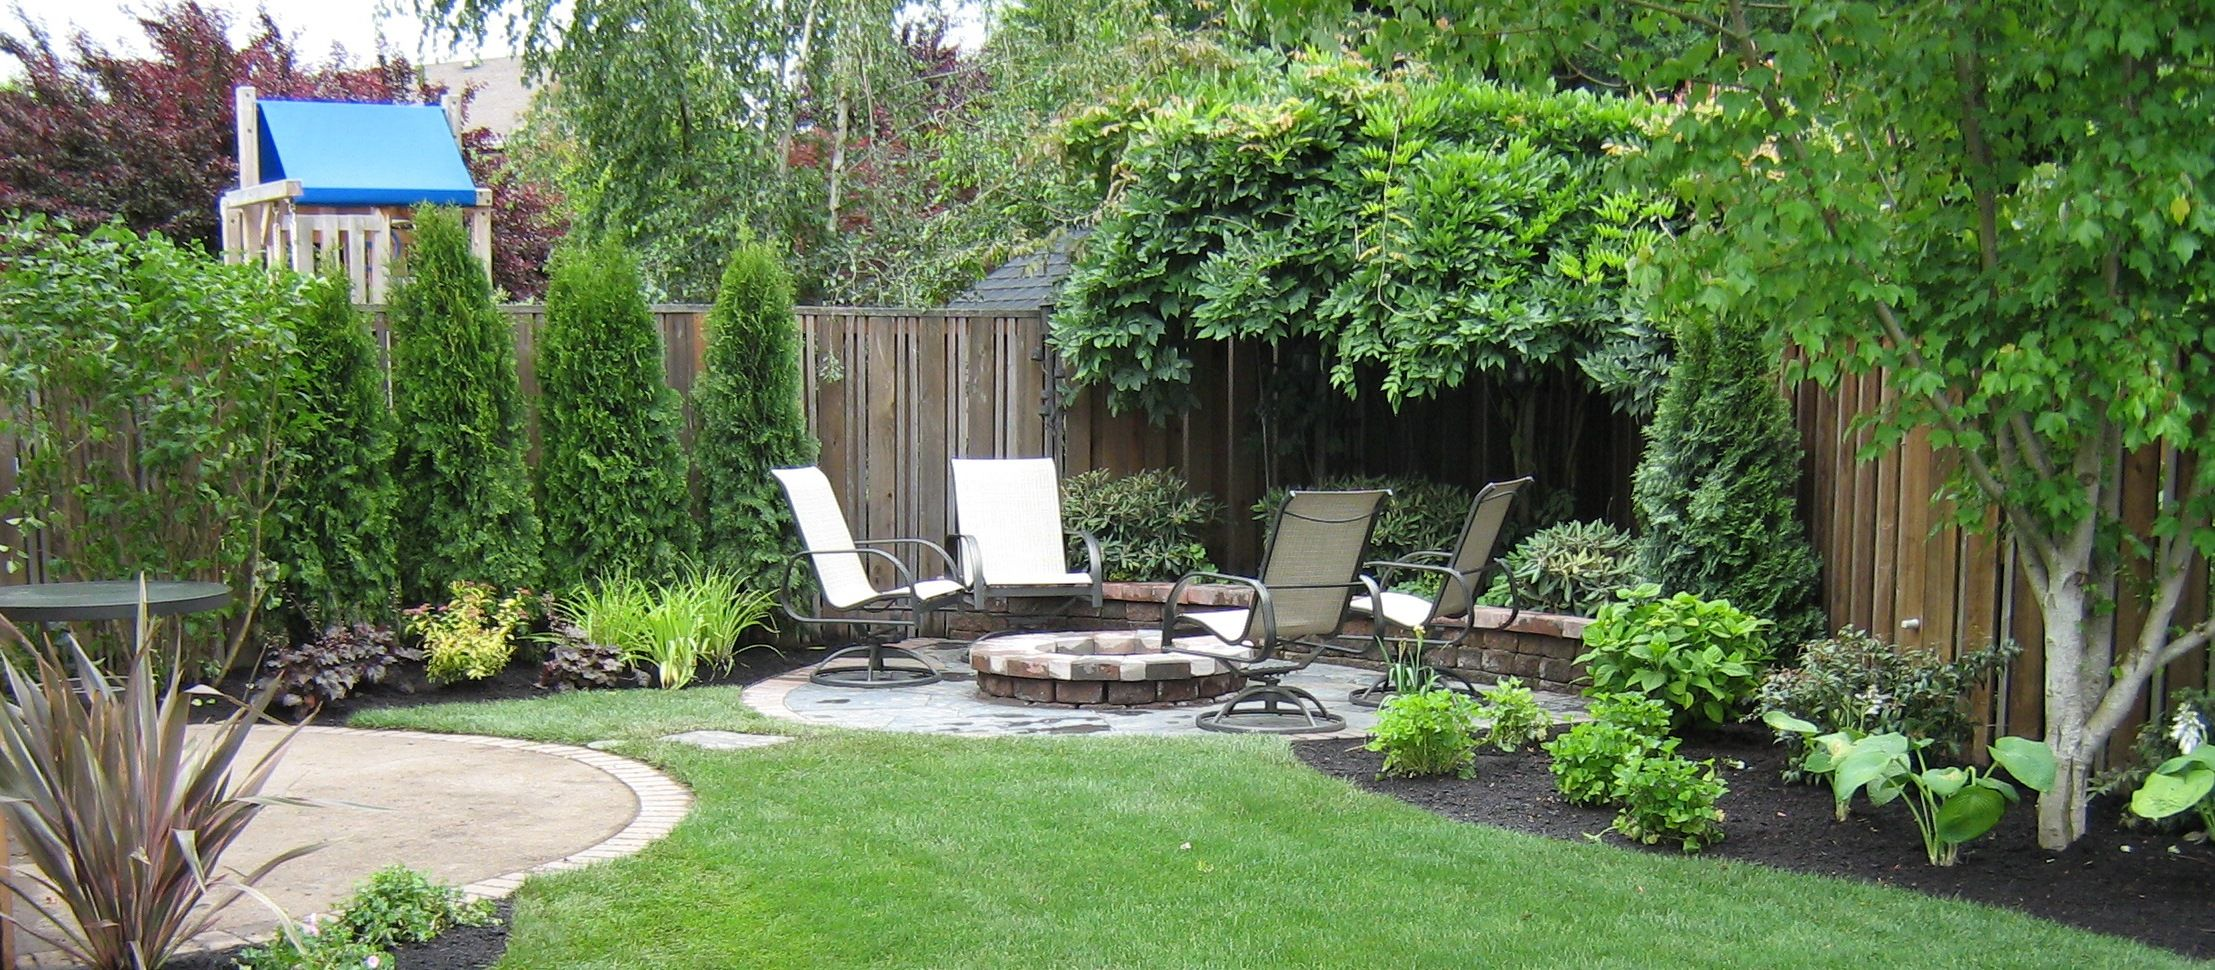 Small backyard landscaping ideas photos garden design for Designing your yard landscape